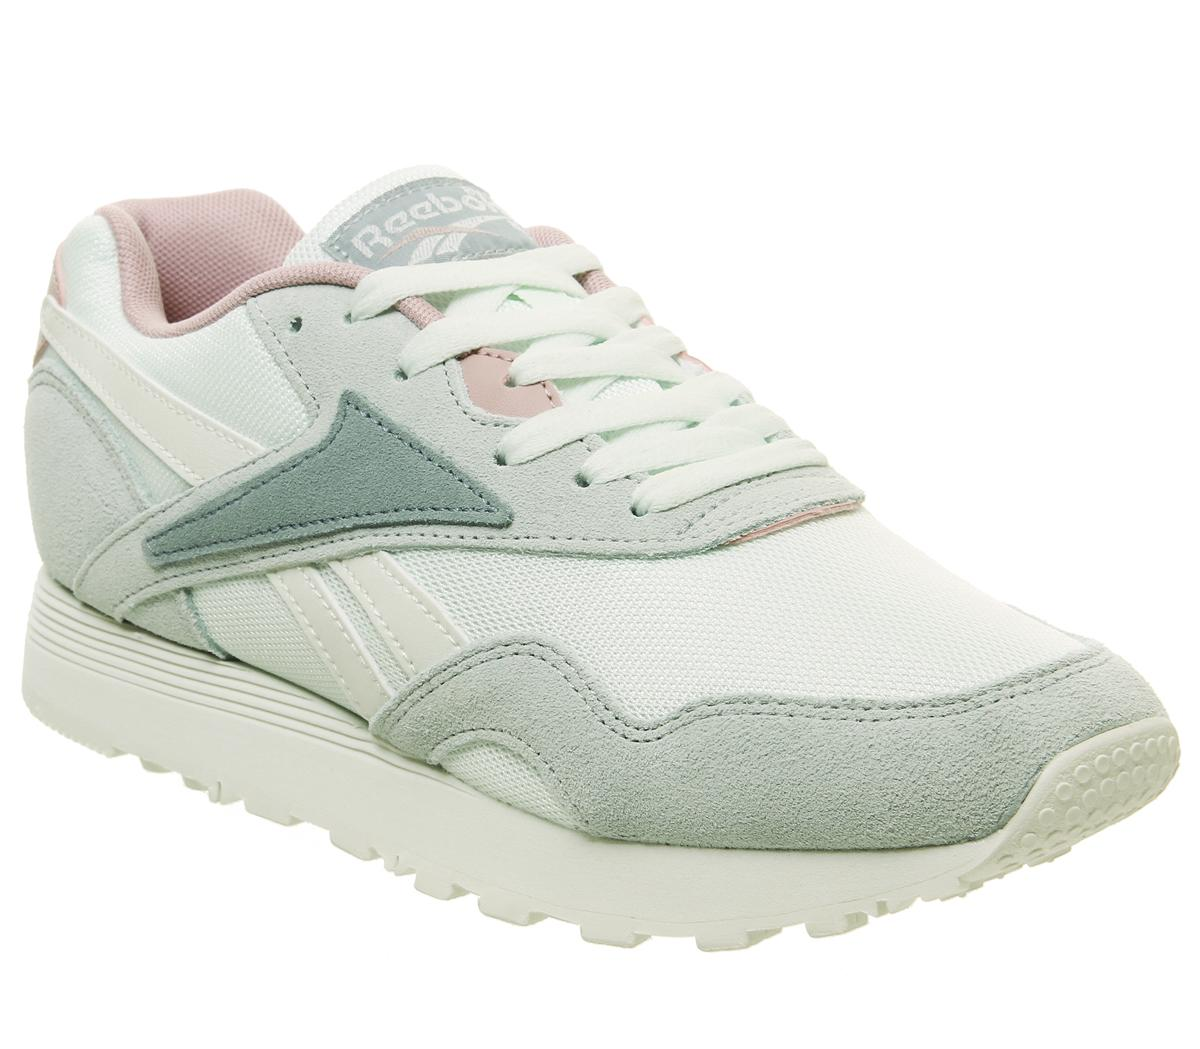 b8f35dcac1a60 Reebok Rapide Trainers Storm Glow Sea Spray Teal Smoky Rose - Hers ...